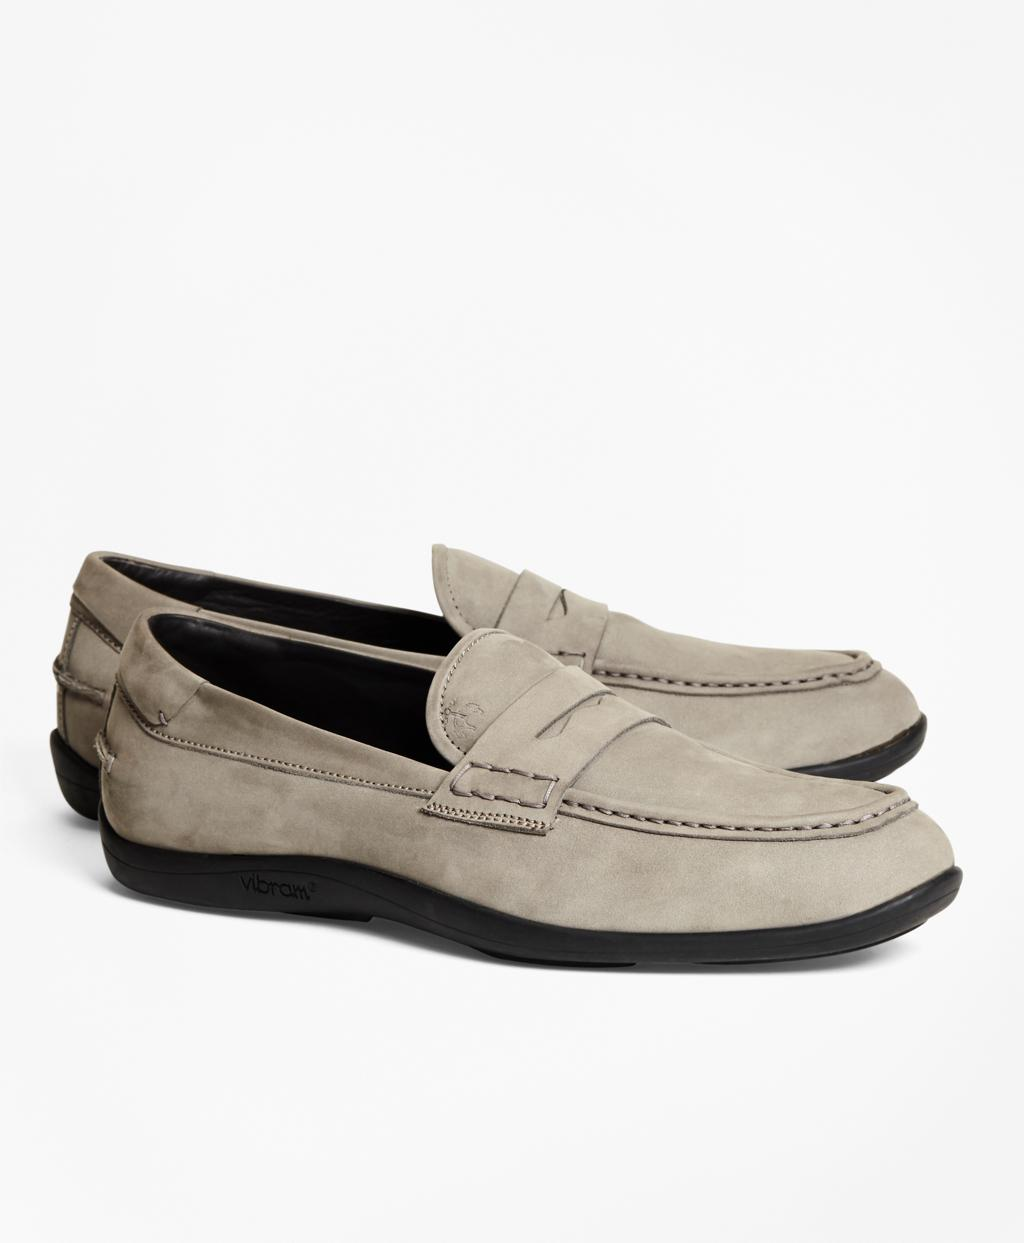 08d66fa24cc5e Lyst - Brooks Brothers 1818 Footwear Suede Penny Moccasins in Gray ...